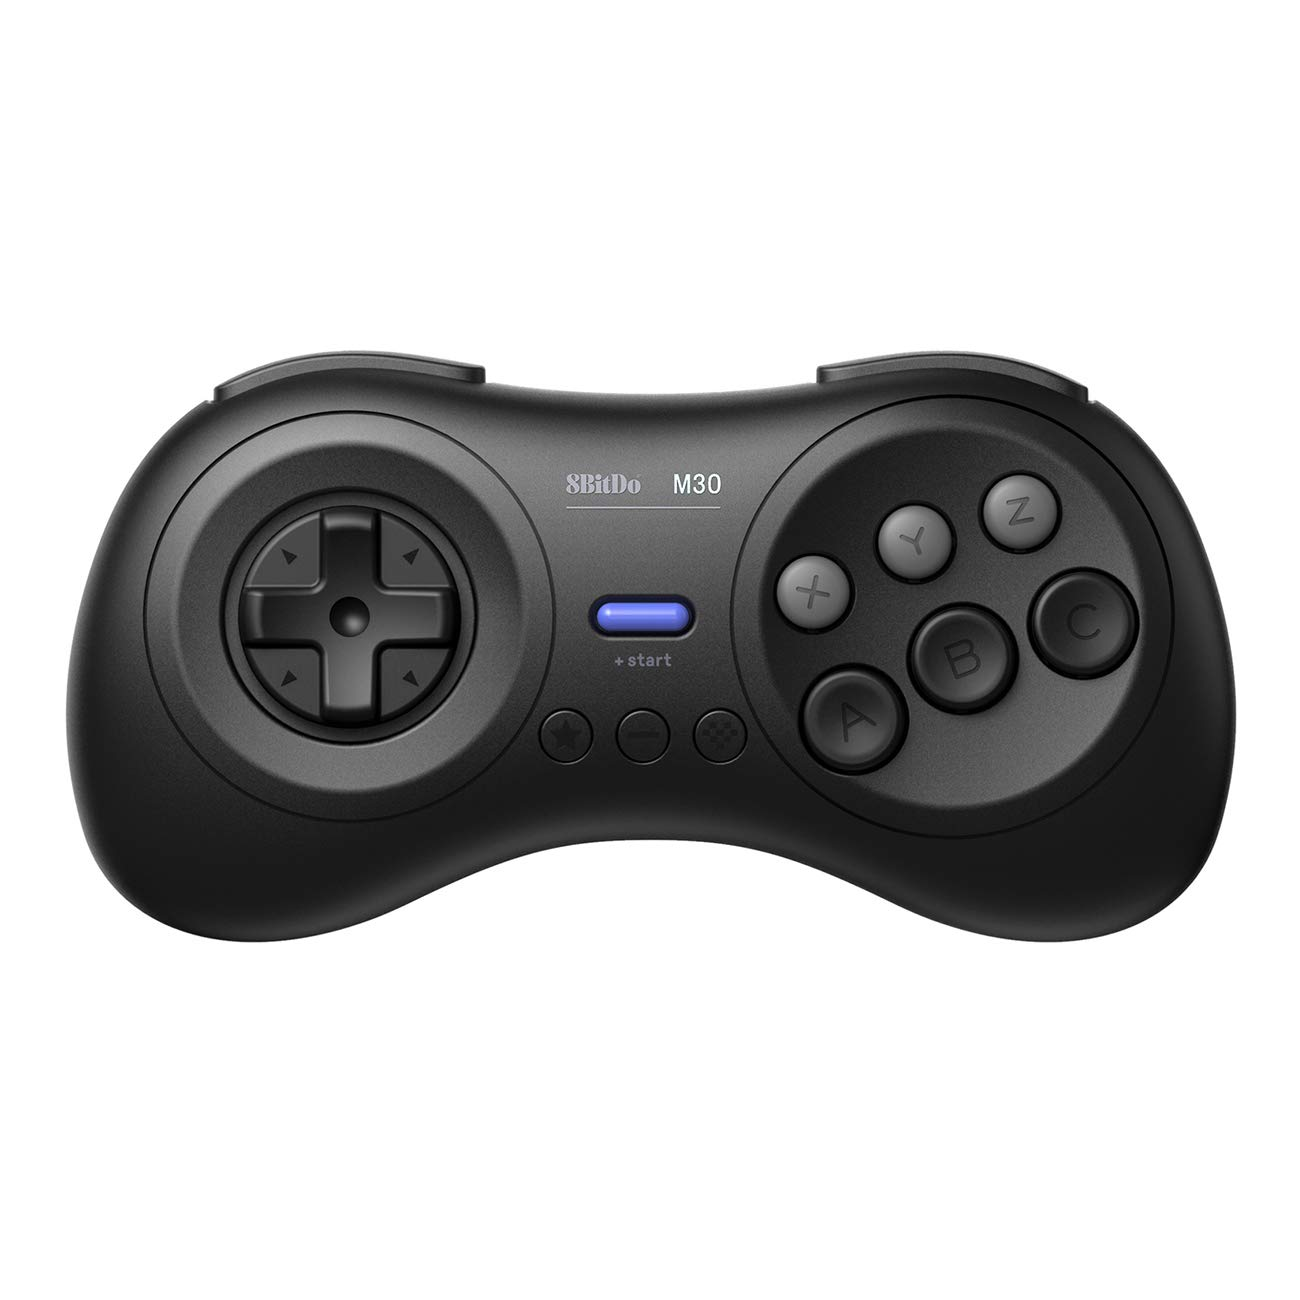 Hyperkin X91 Controller | Test Your Might